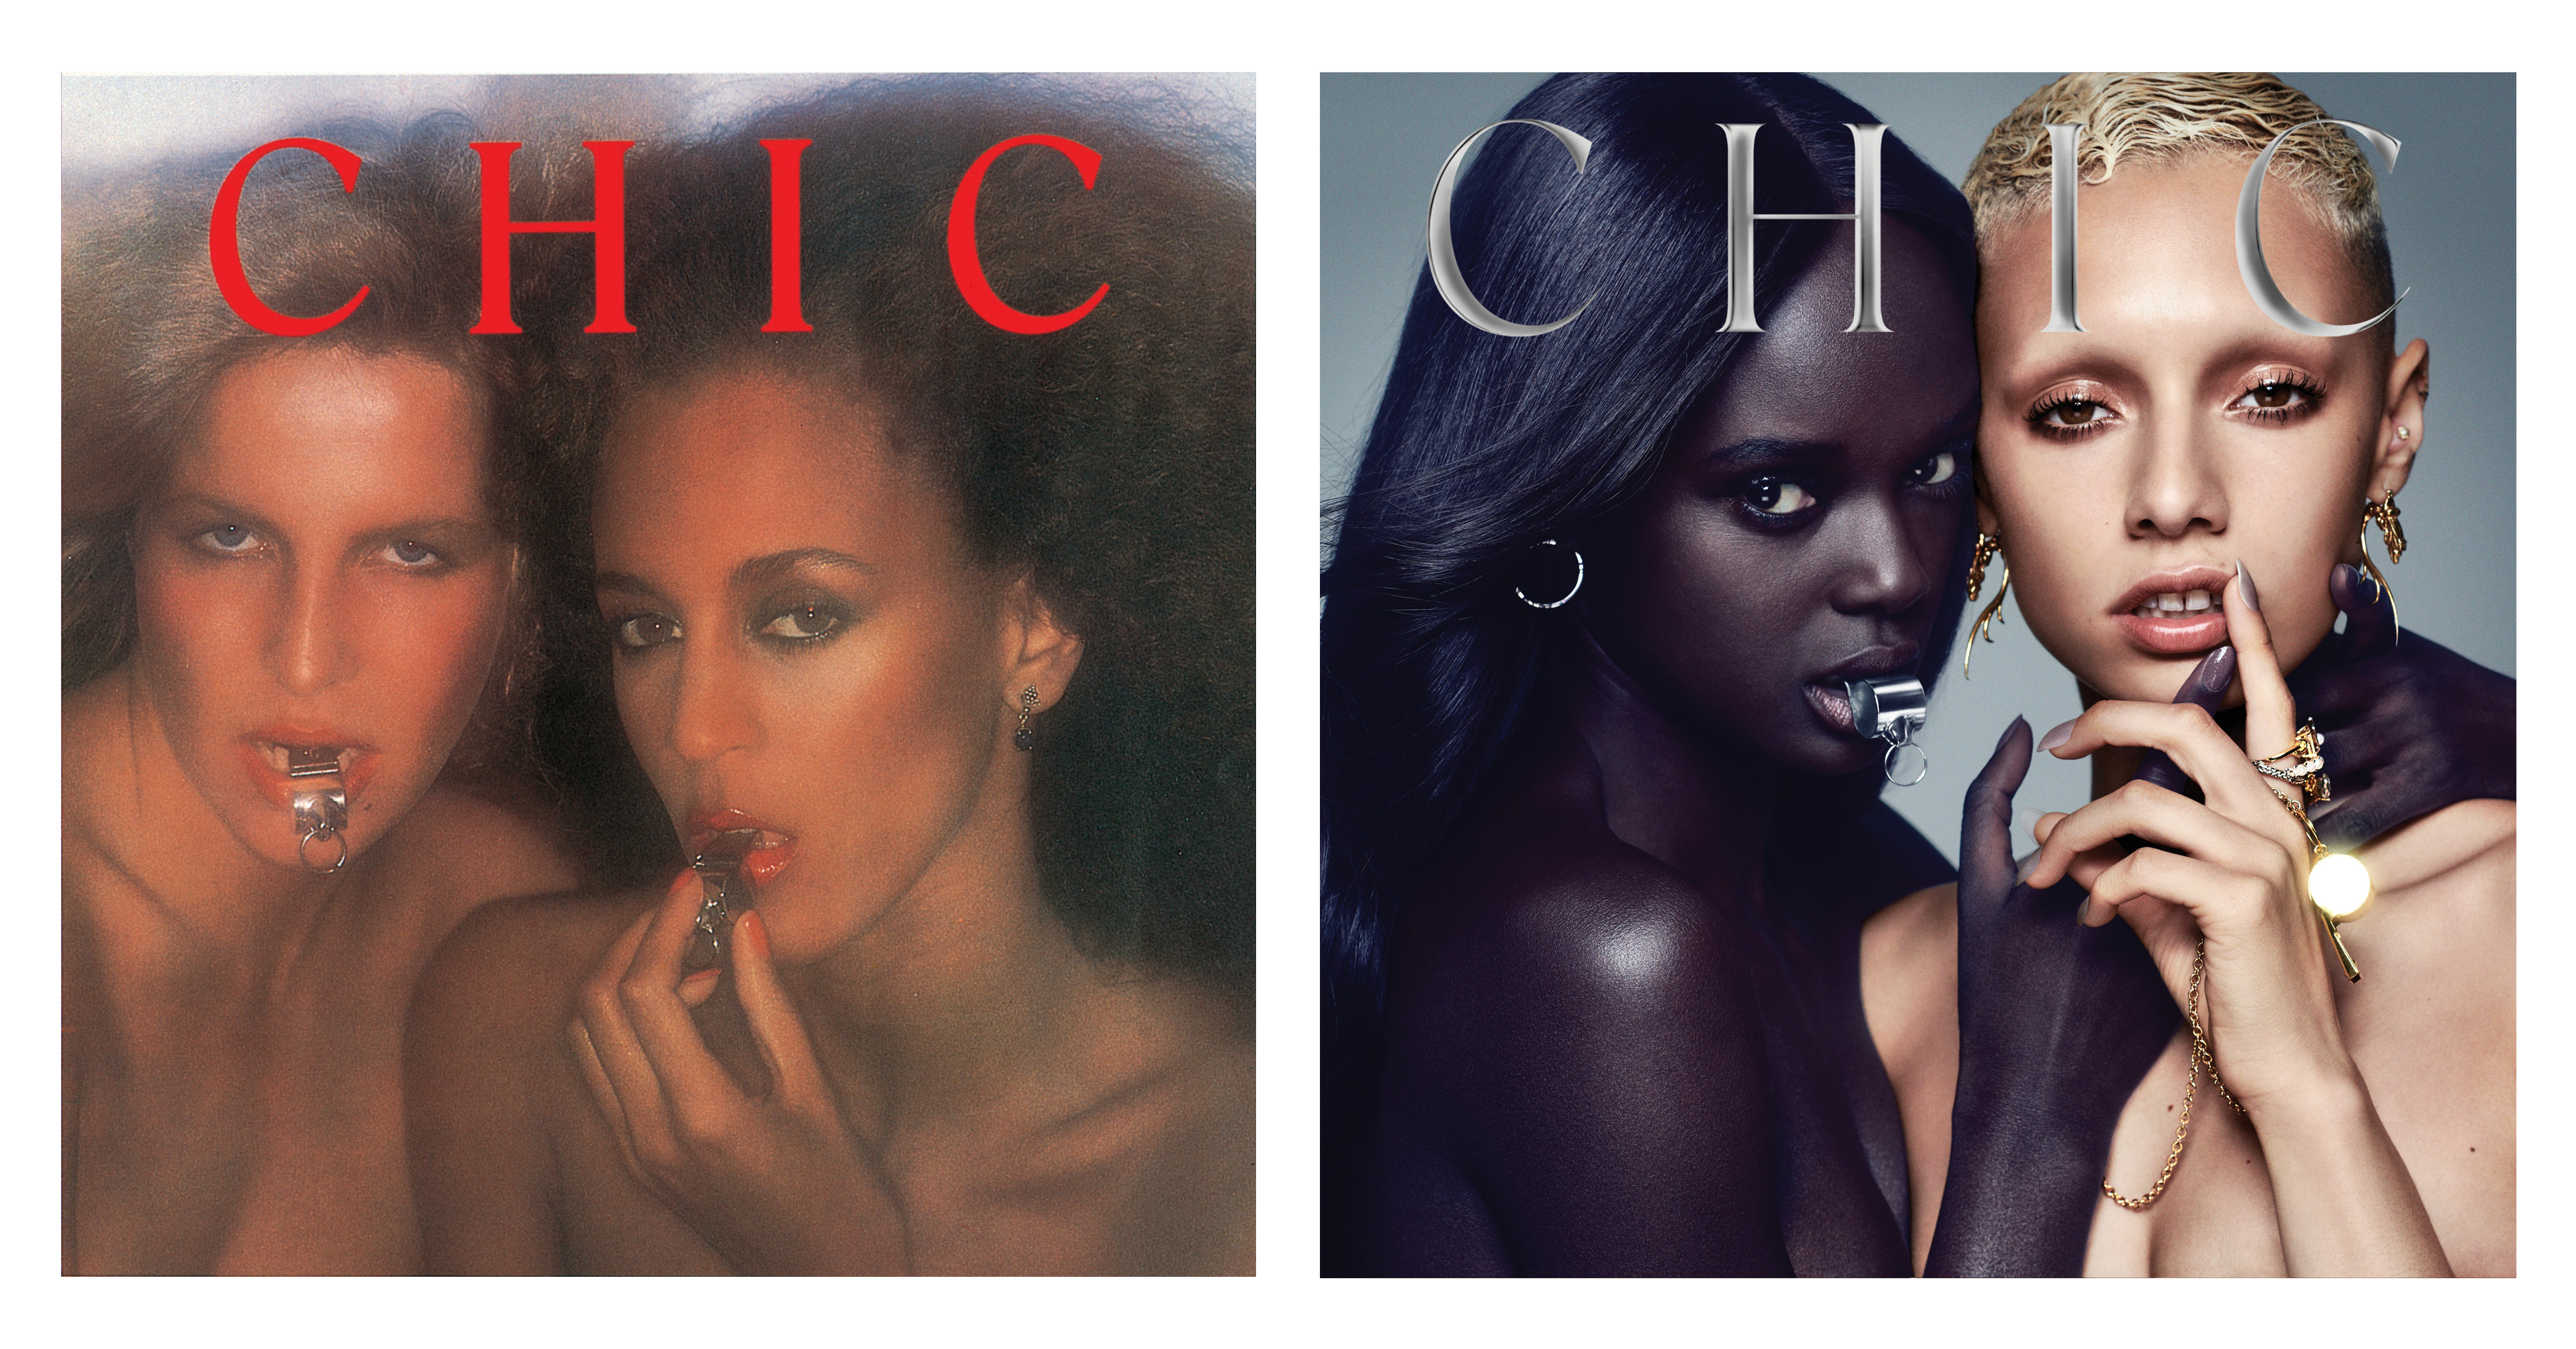 Exclusive: Chic Reveals the Album Cover for 'It's About Time' | V Magazine